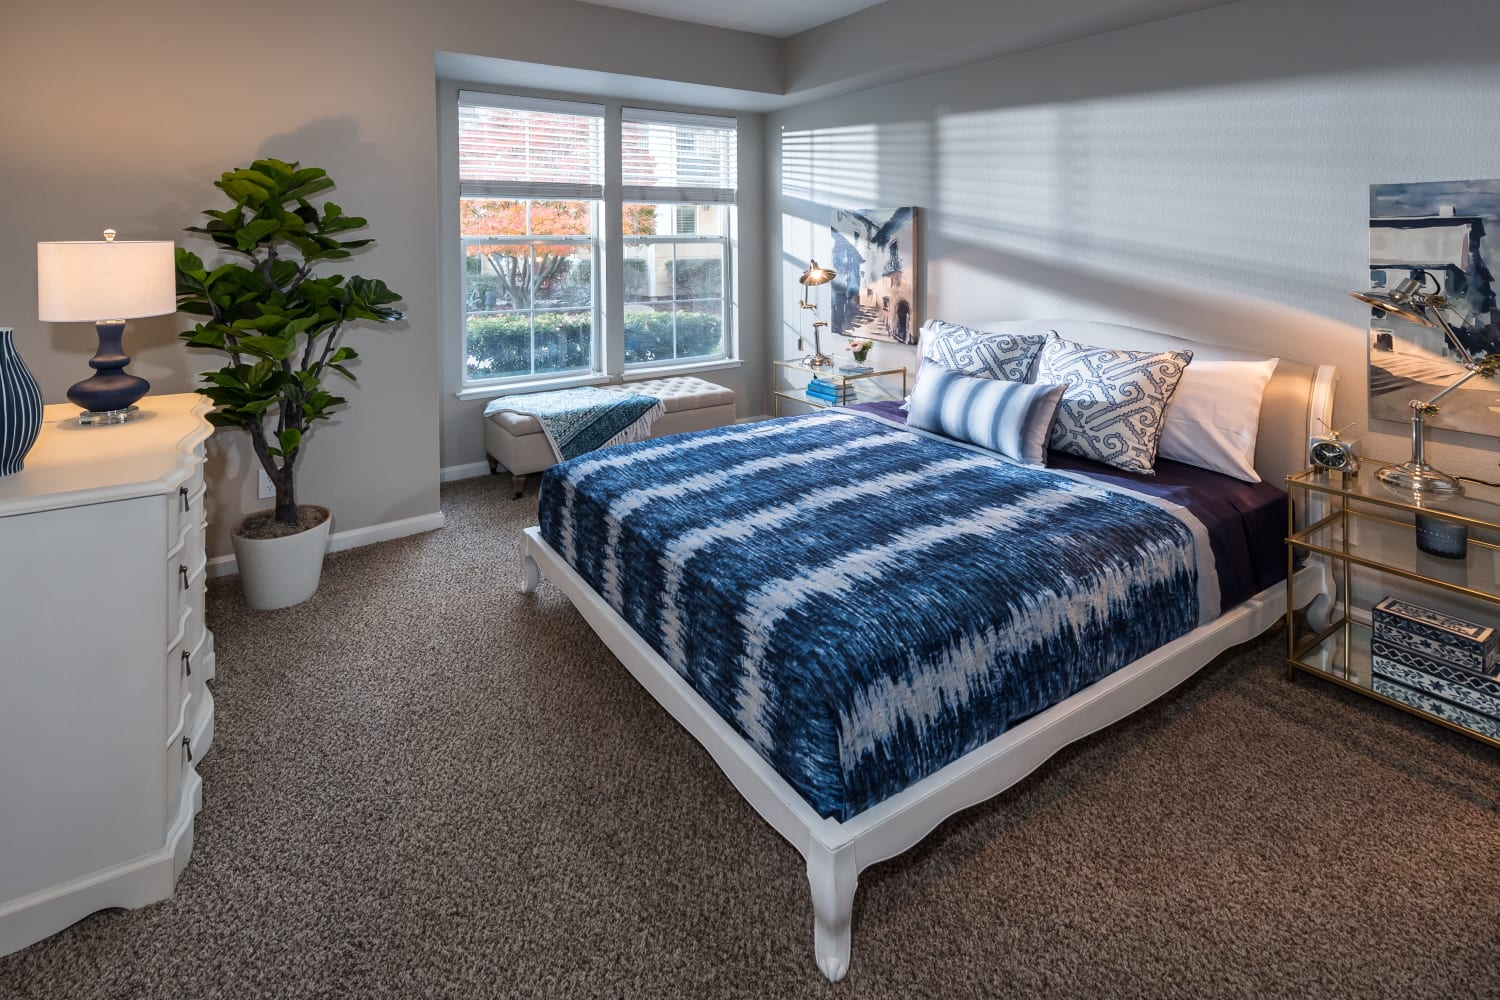 Sun-lit bedroom at Nantucket Apartments in Santa Clara, California